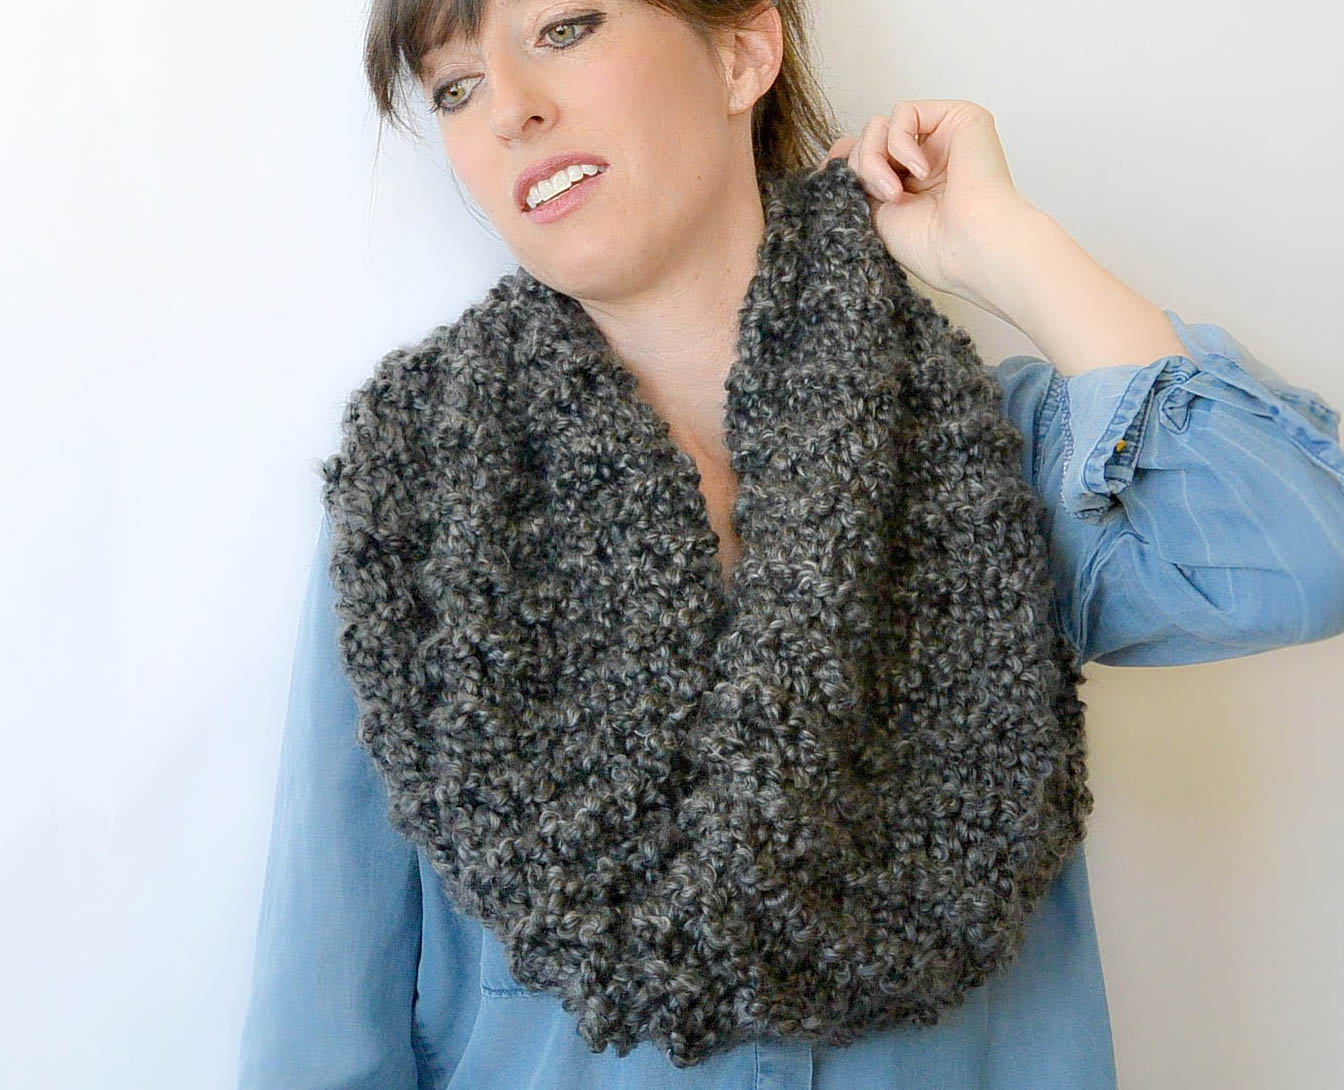 TALL Eiffel Cowl - Beginner Knitting Pattern   Mama In A Stitch